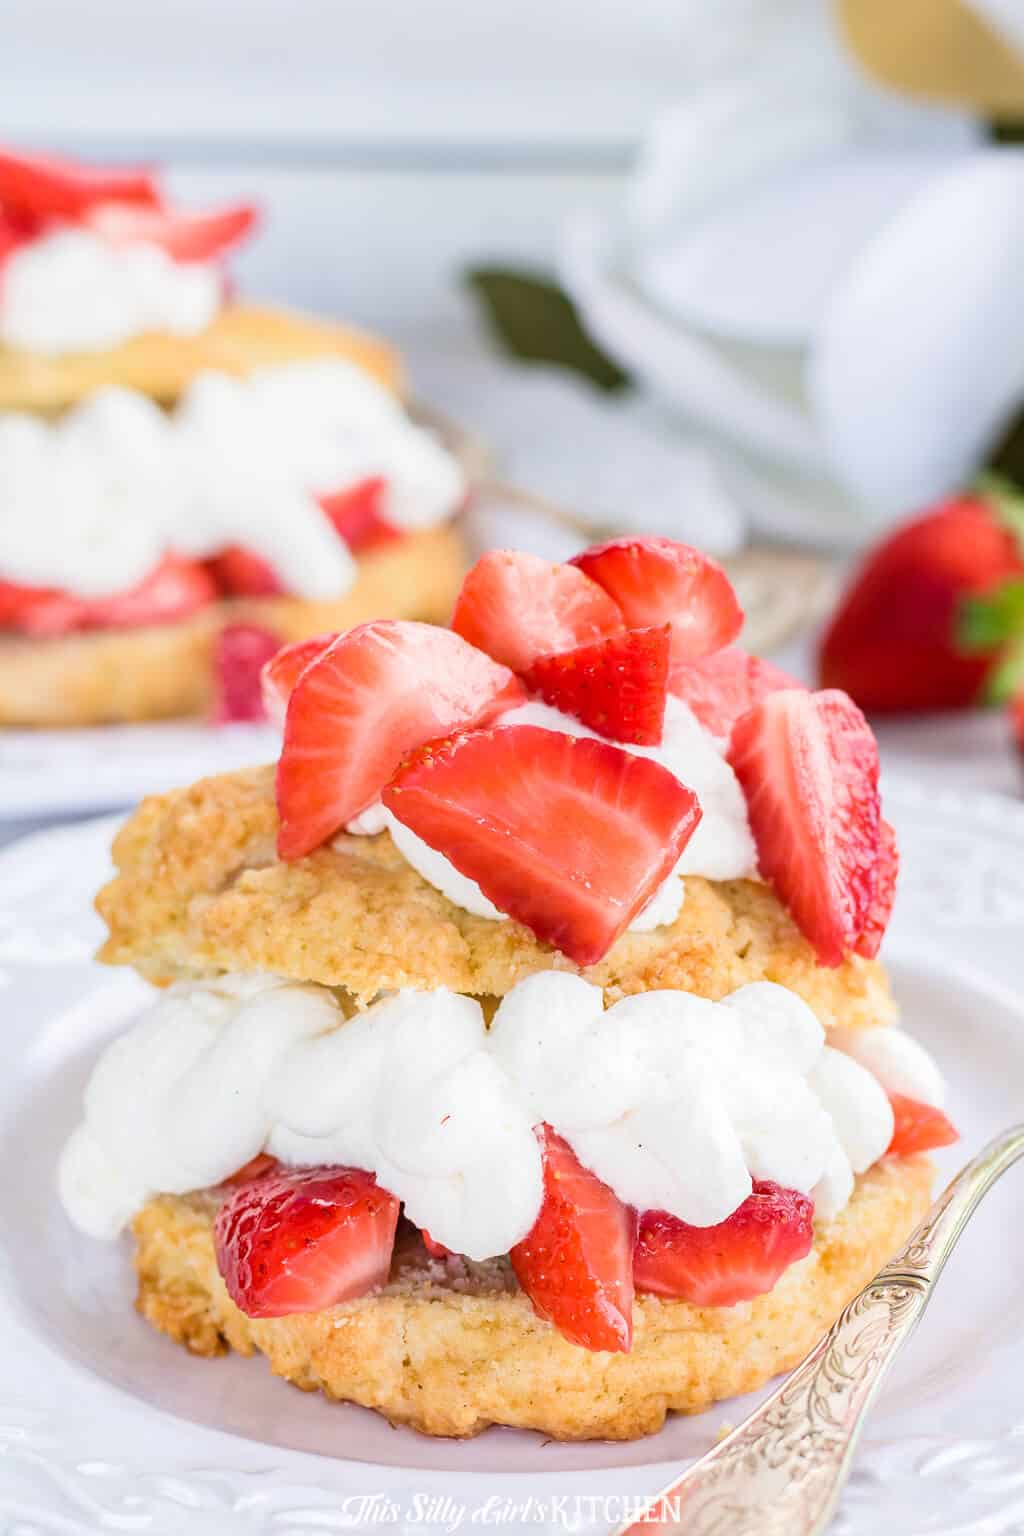 This easy strawberry shortcake recipe is soon to be a dessert you always keep in your recipe arsenal. #RECIPE from thissillygirlskitchen.com#strawberryshortcake #strawberry #dessert #summer